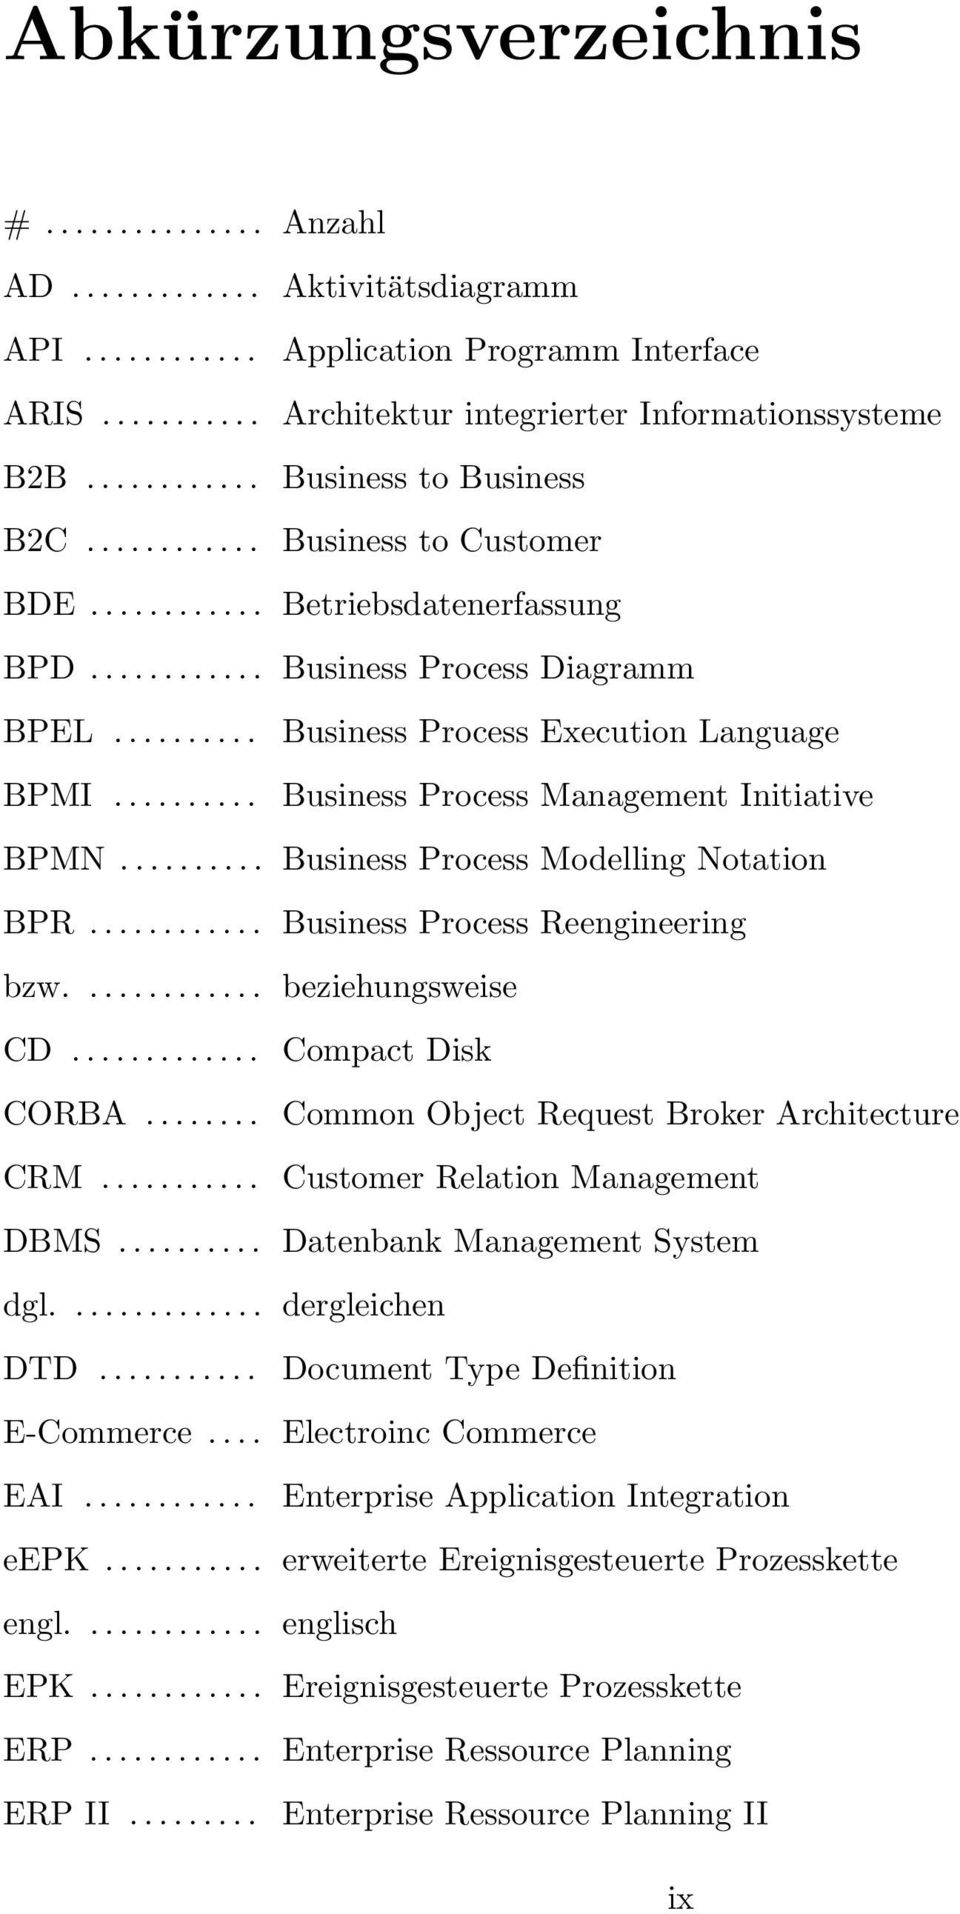 ......... Business Process Management Initiative BPMN.......... Business Process Modelling Notation BPR............ Business Process Reengineering bzw............. beziehungsweise CD.